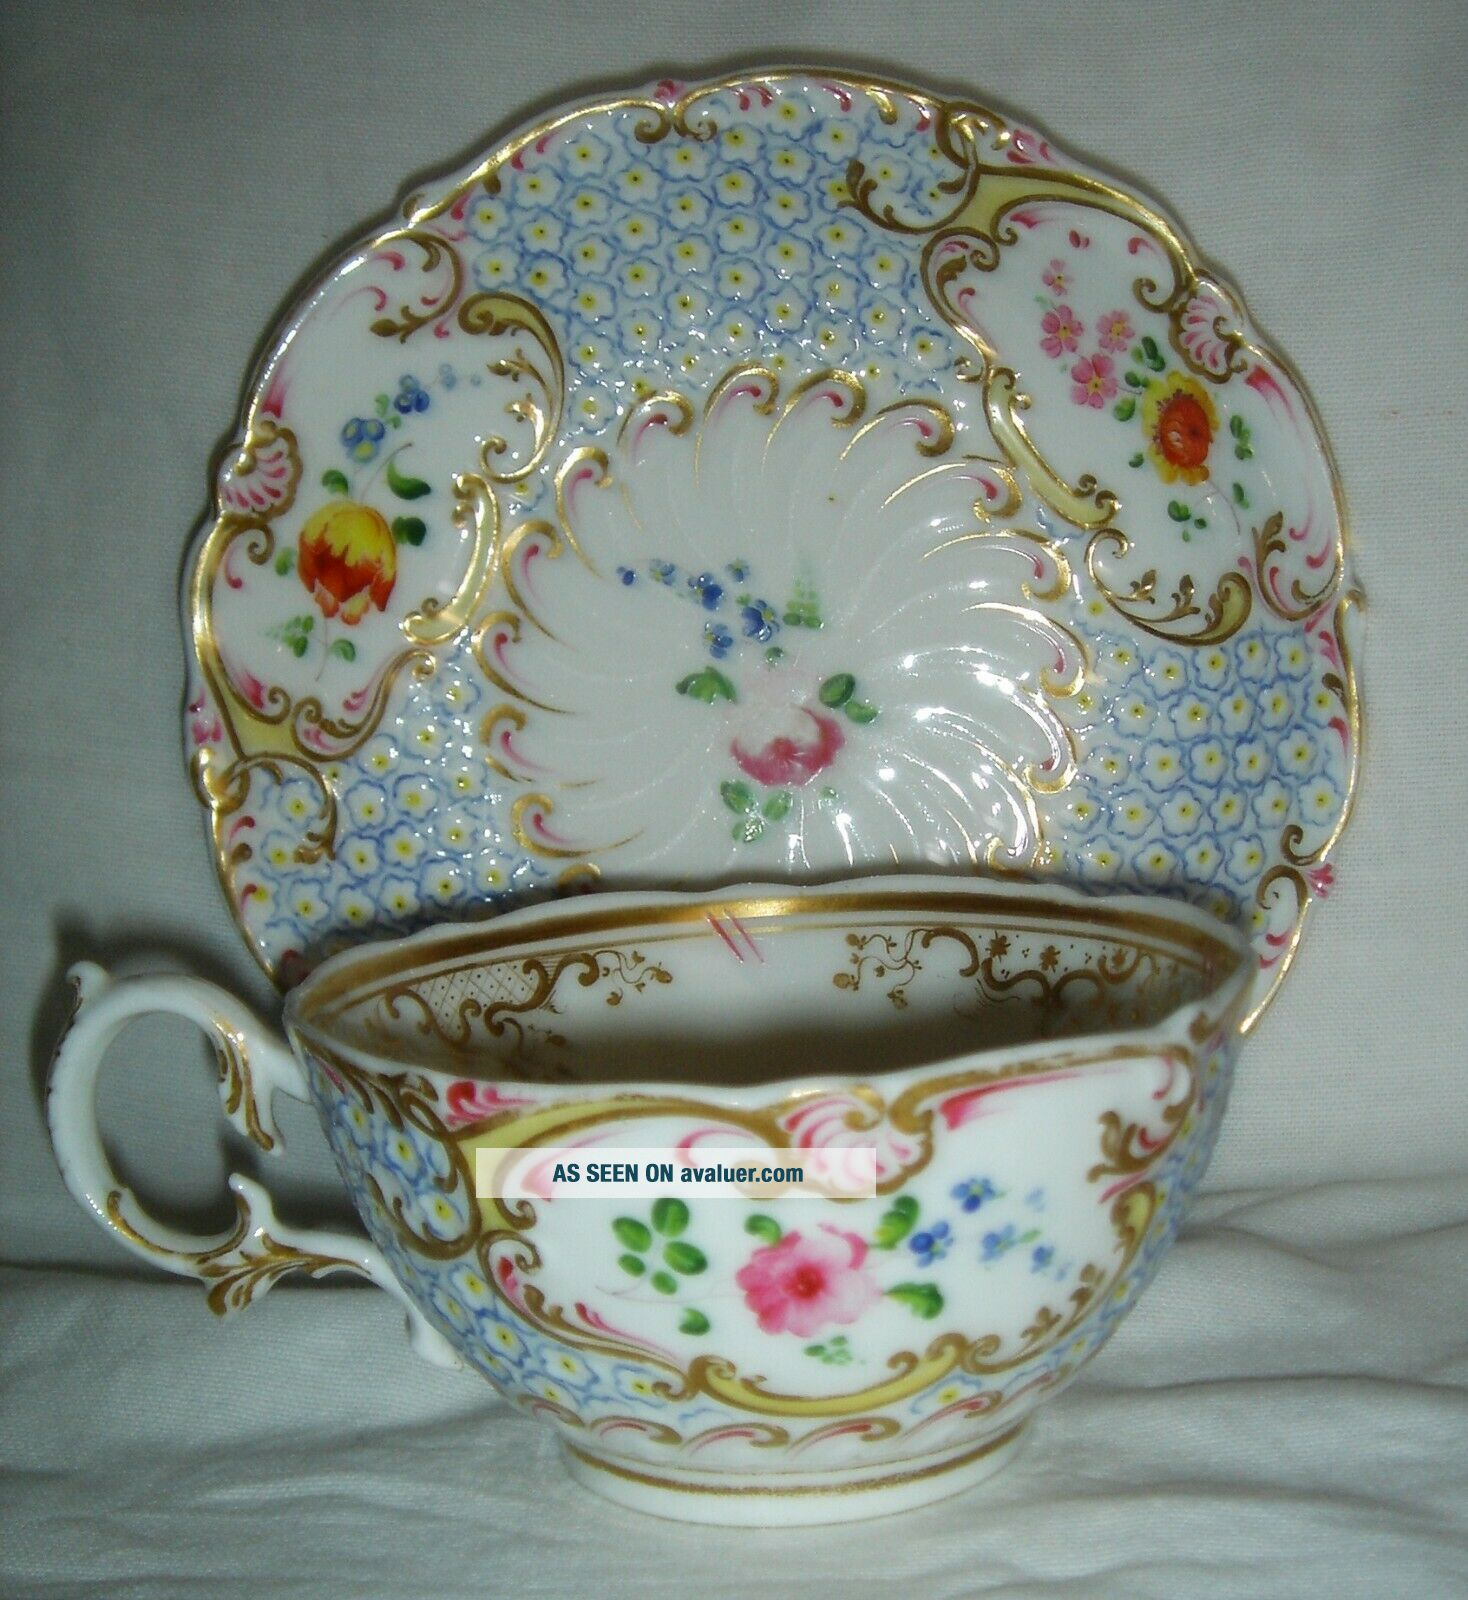 QUALITY ANTIQUE HR DANIEL MOULDED CUP & SAUCER HAND PAINTED FLOWERS 4630